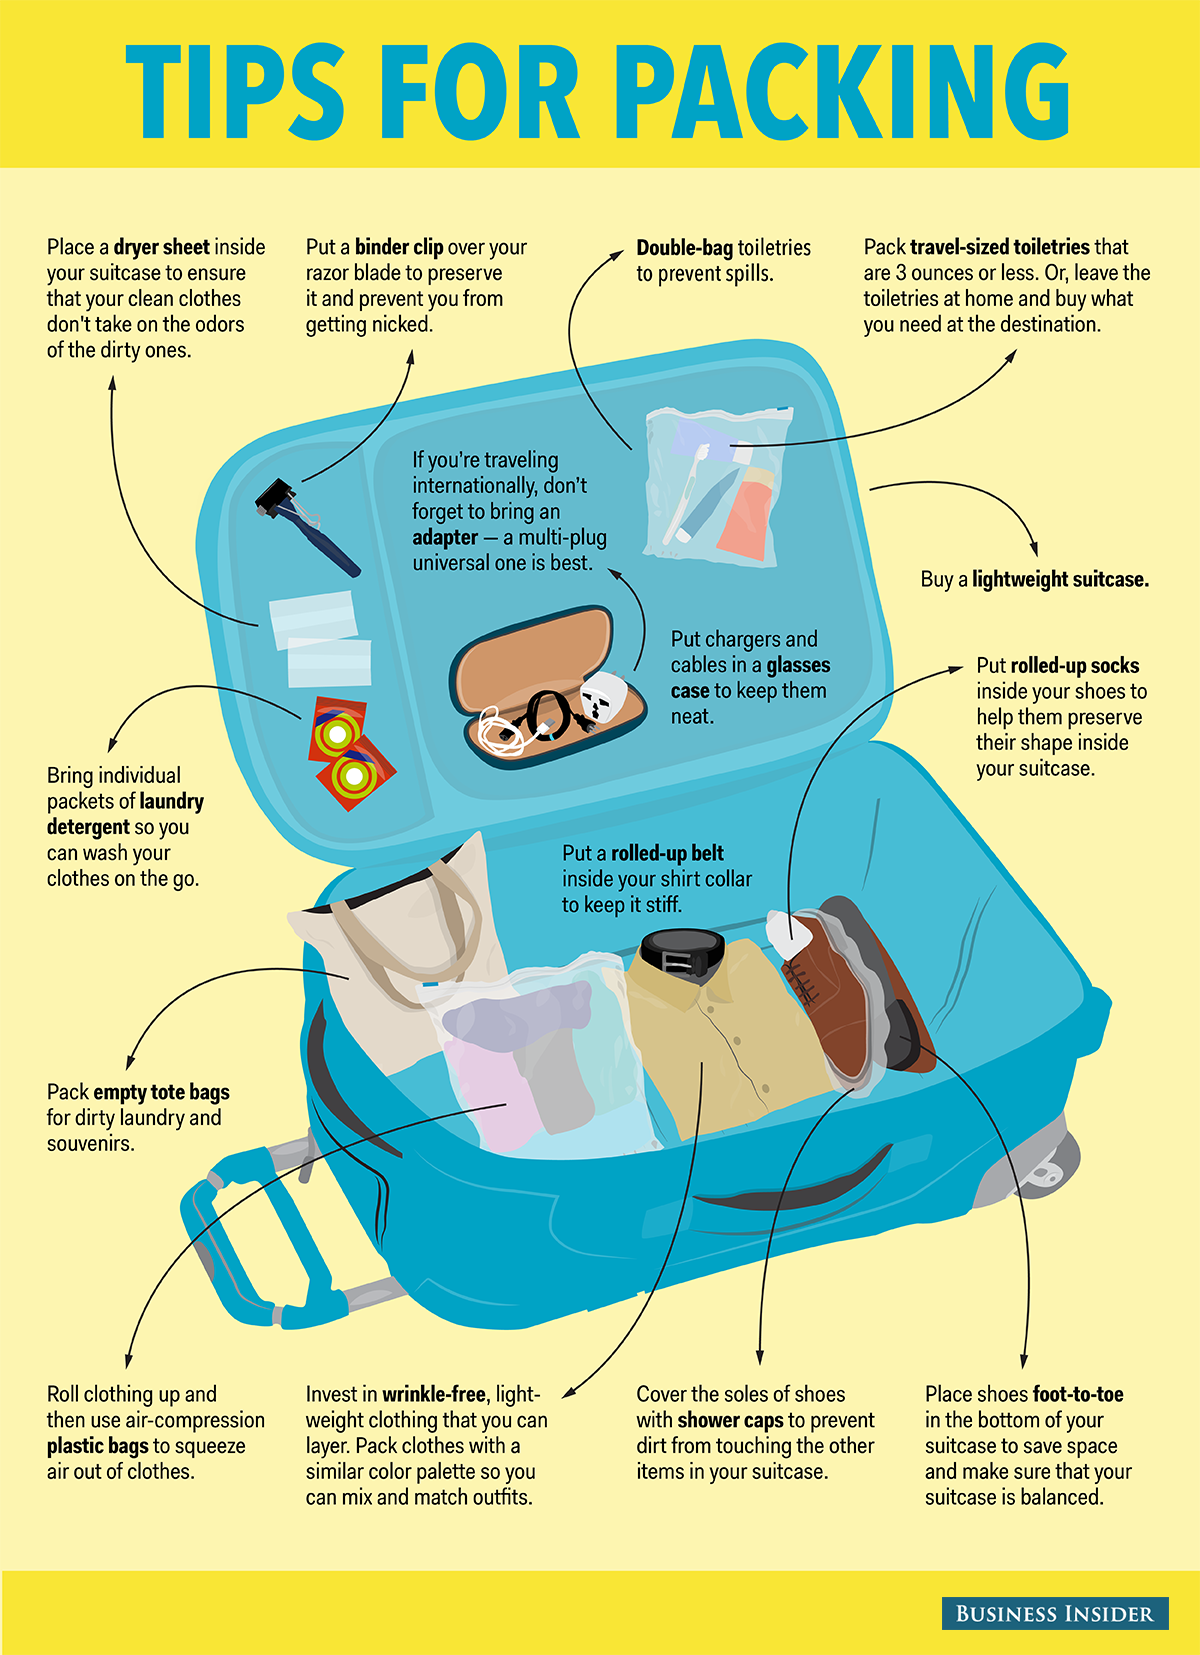 Best way to fold clothes for suitcase - The Right Way To Pack A Suitcase